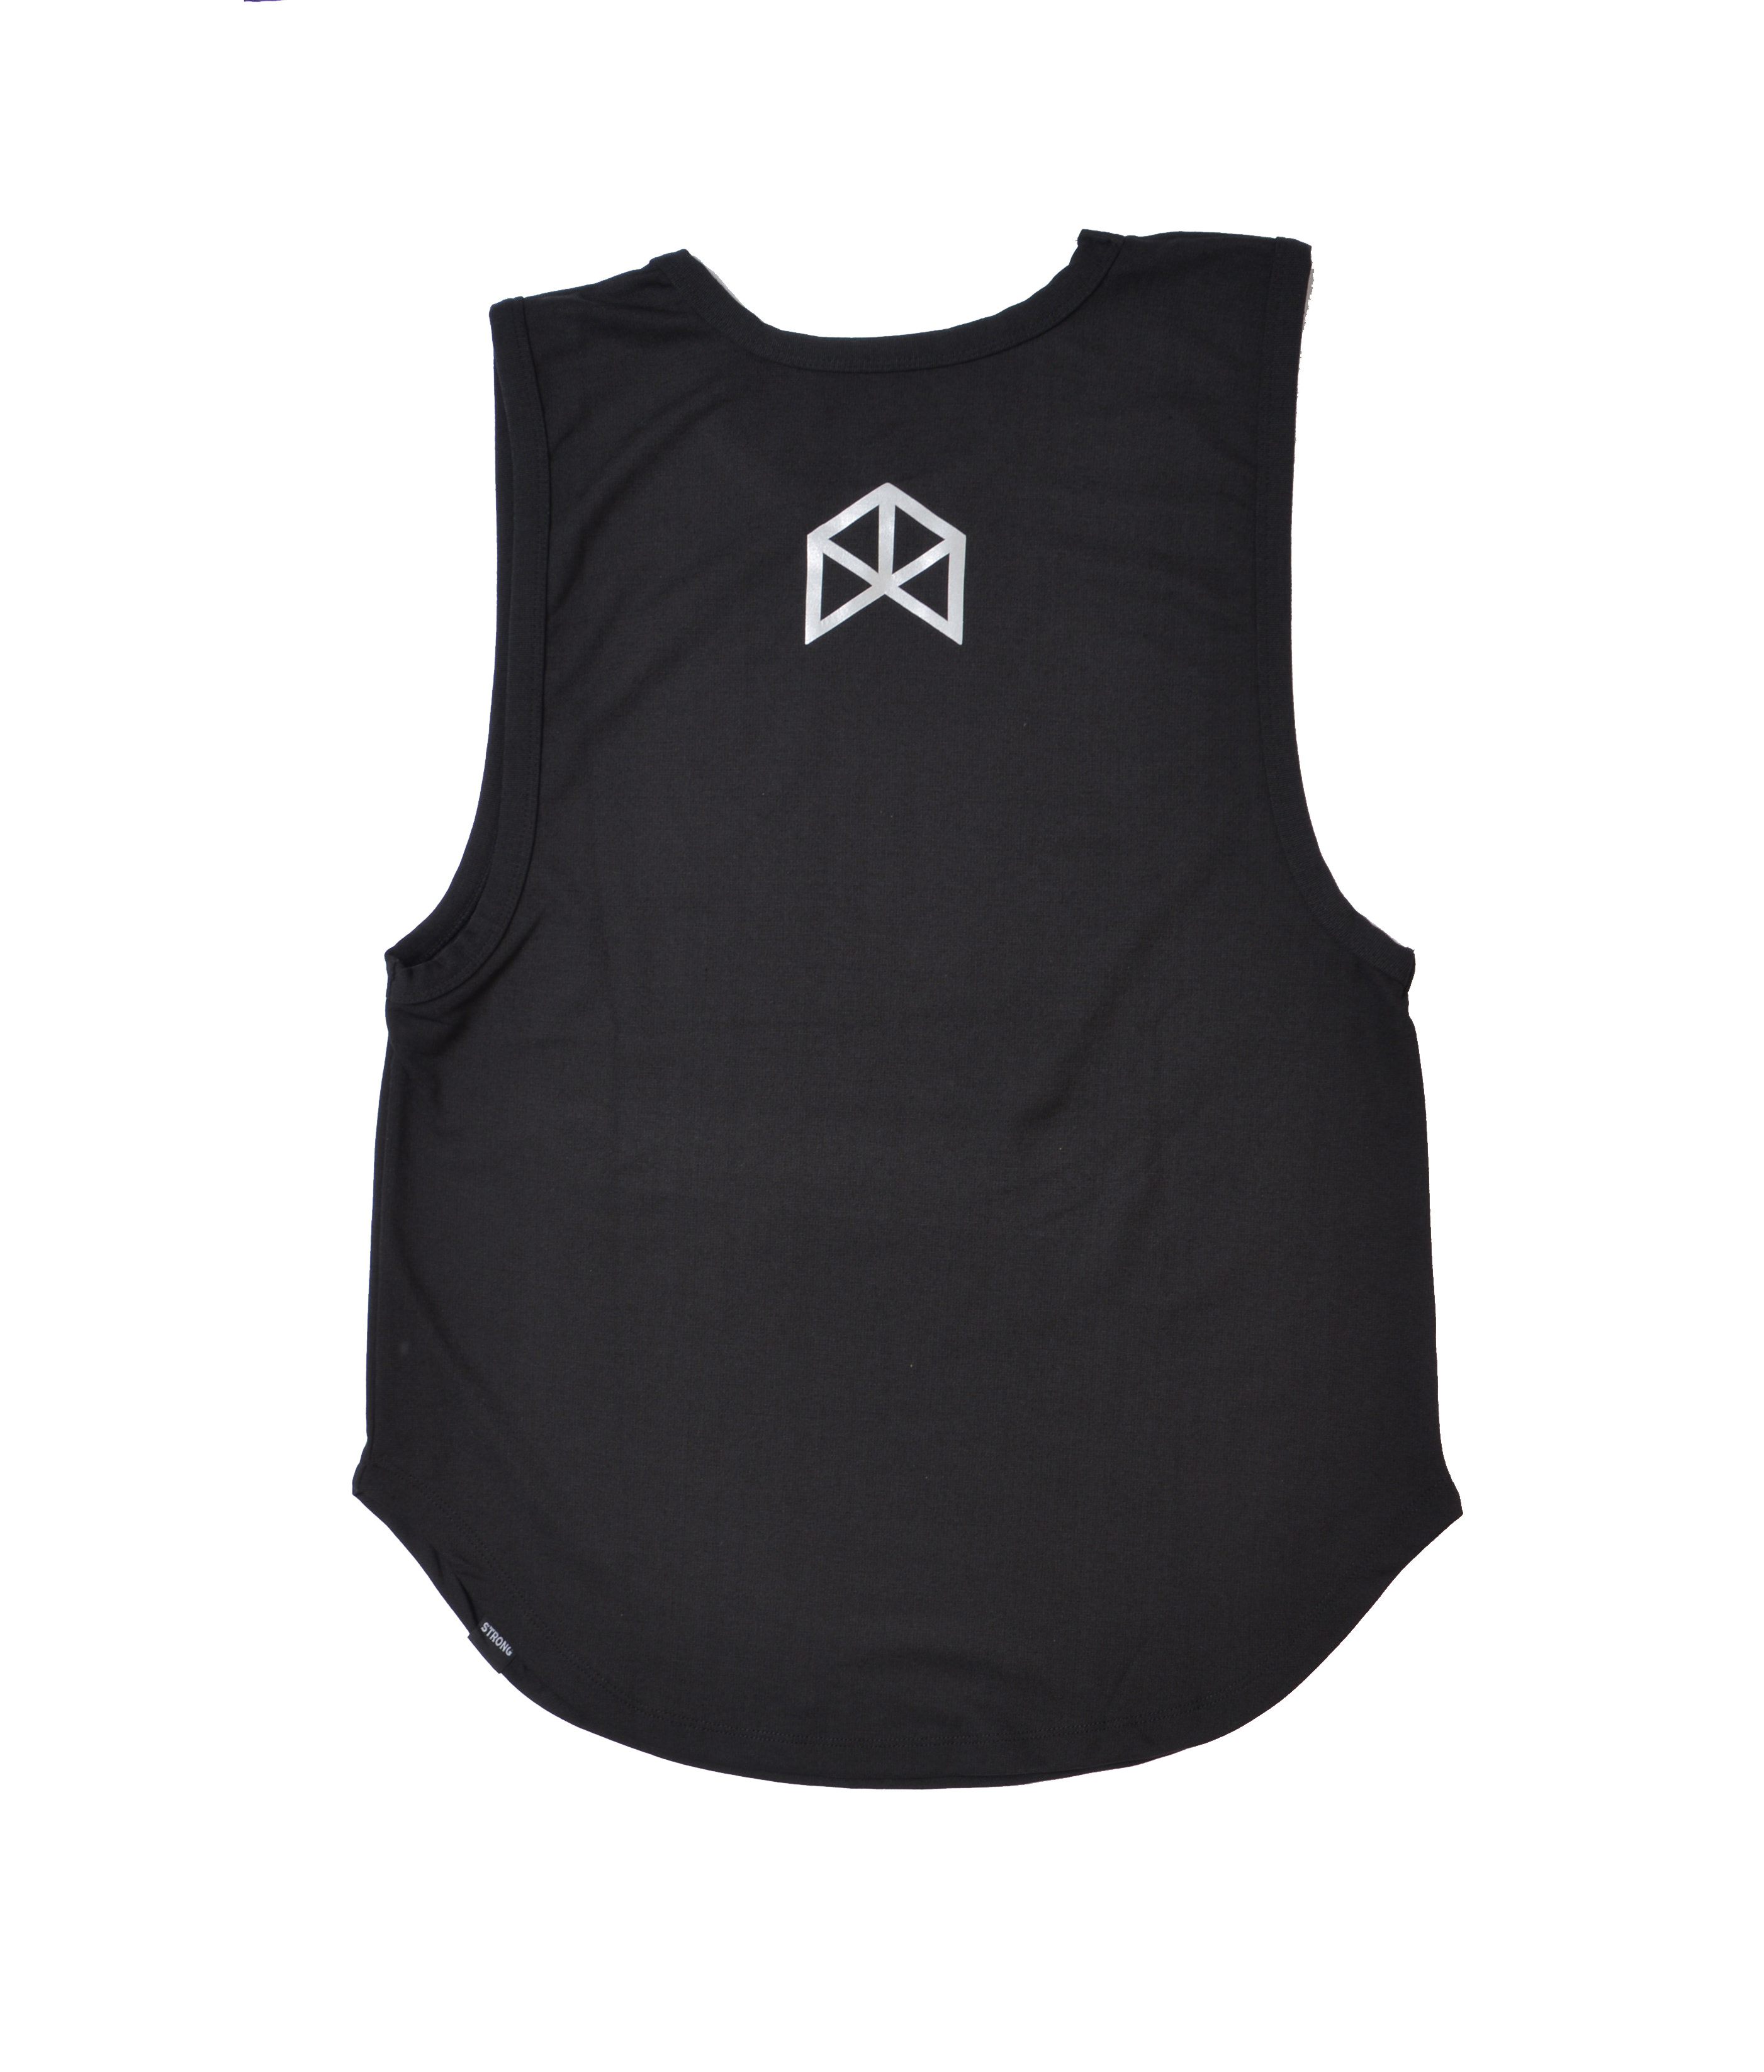 BMFIT Polyester Muscle Tanks - Black